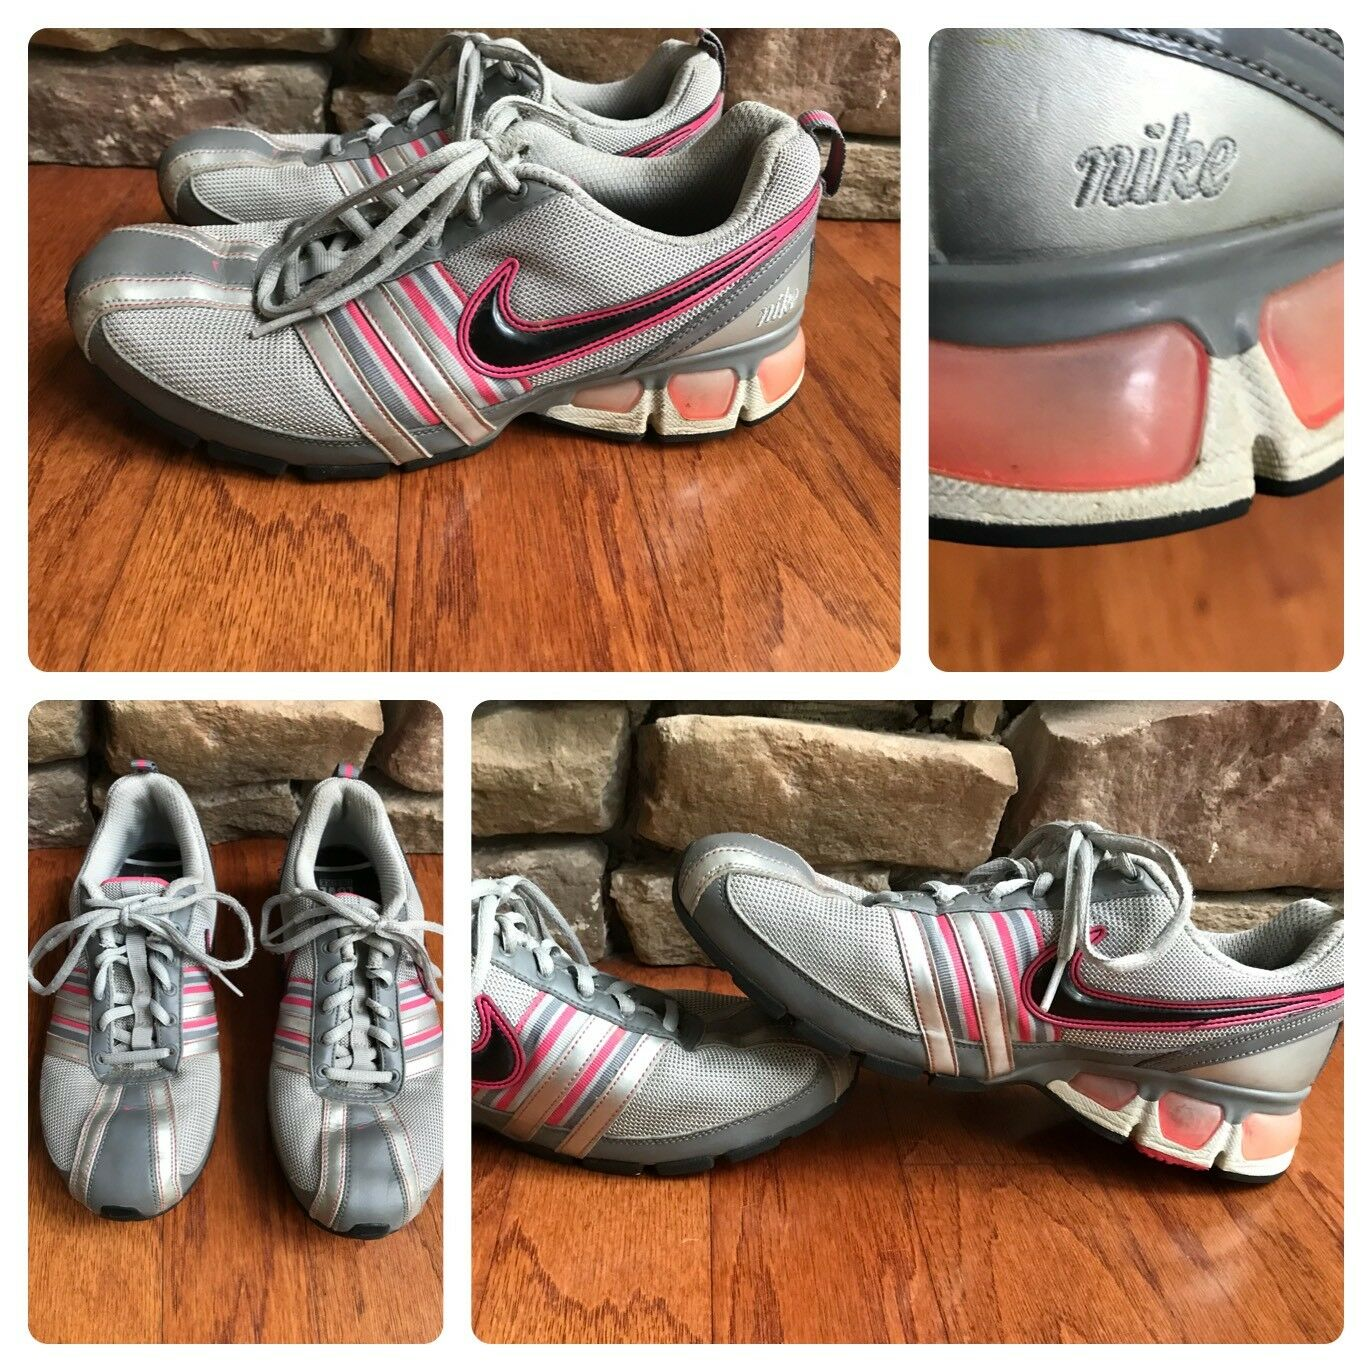 les turbulences Argent  taille rose nike air max taille  7,5 en chaussures de sport f8f7a4